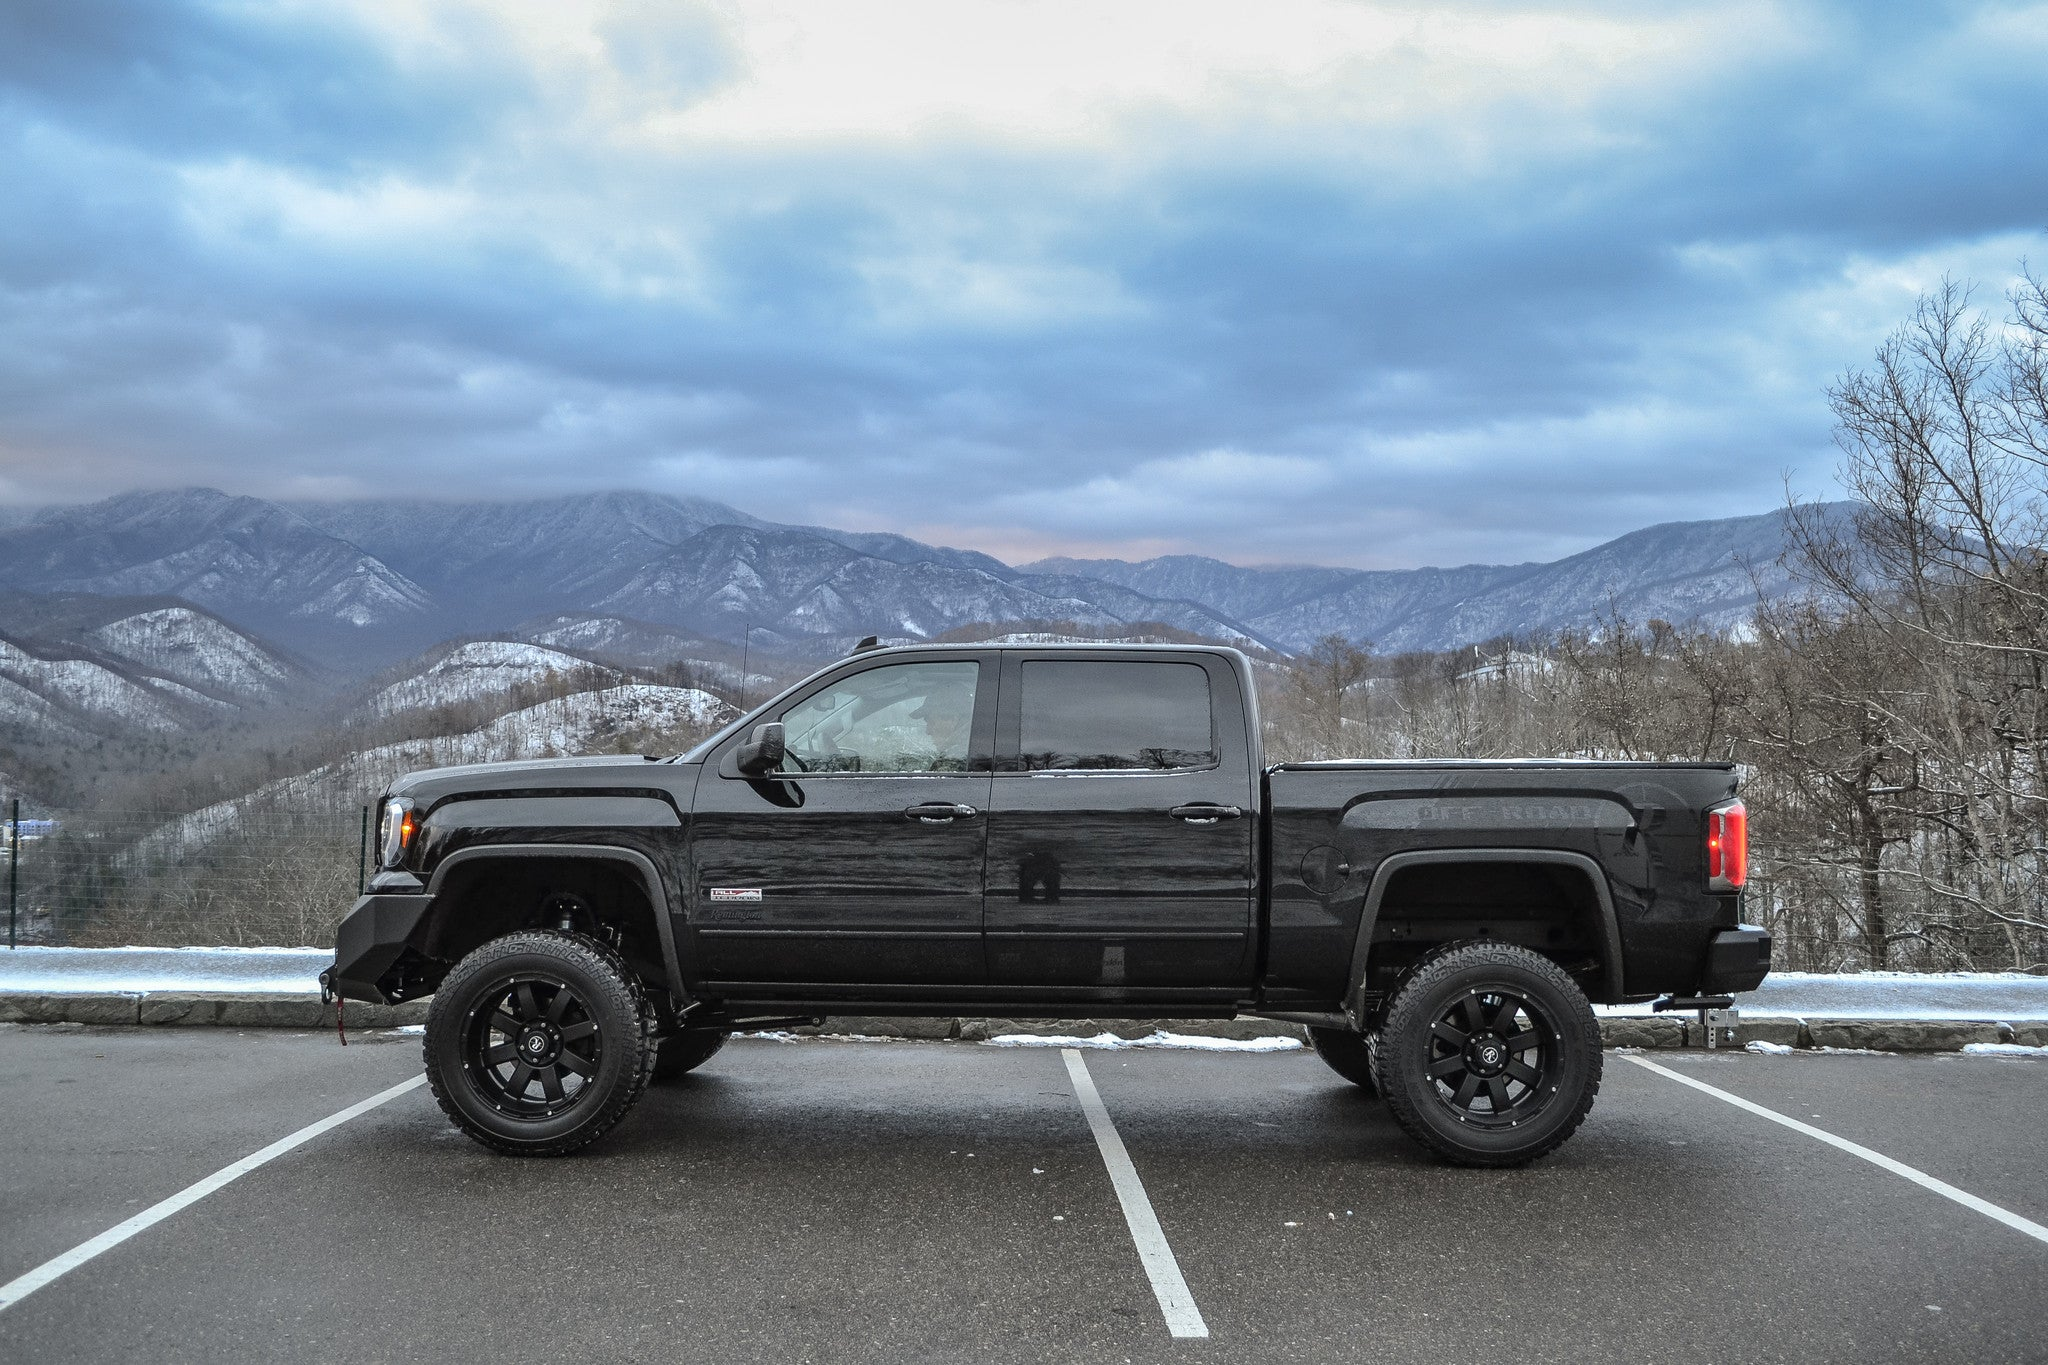 Gallery Gmc Sierra 1500 All Terrain Through The Smokies Photoshoot Remington Wheels